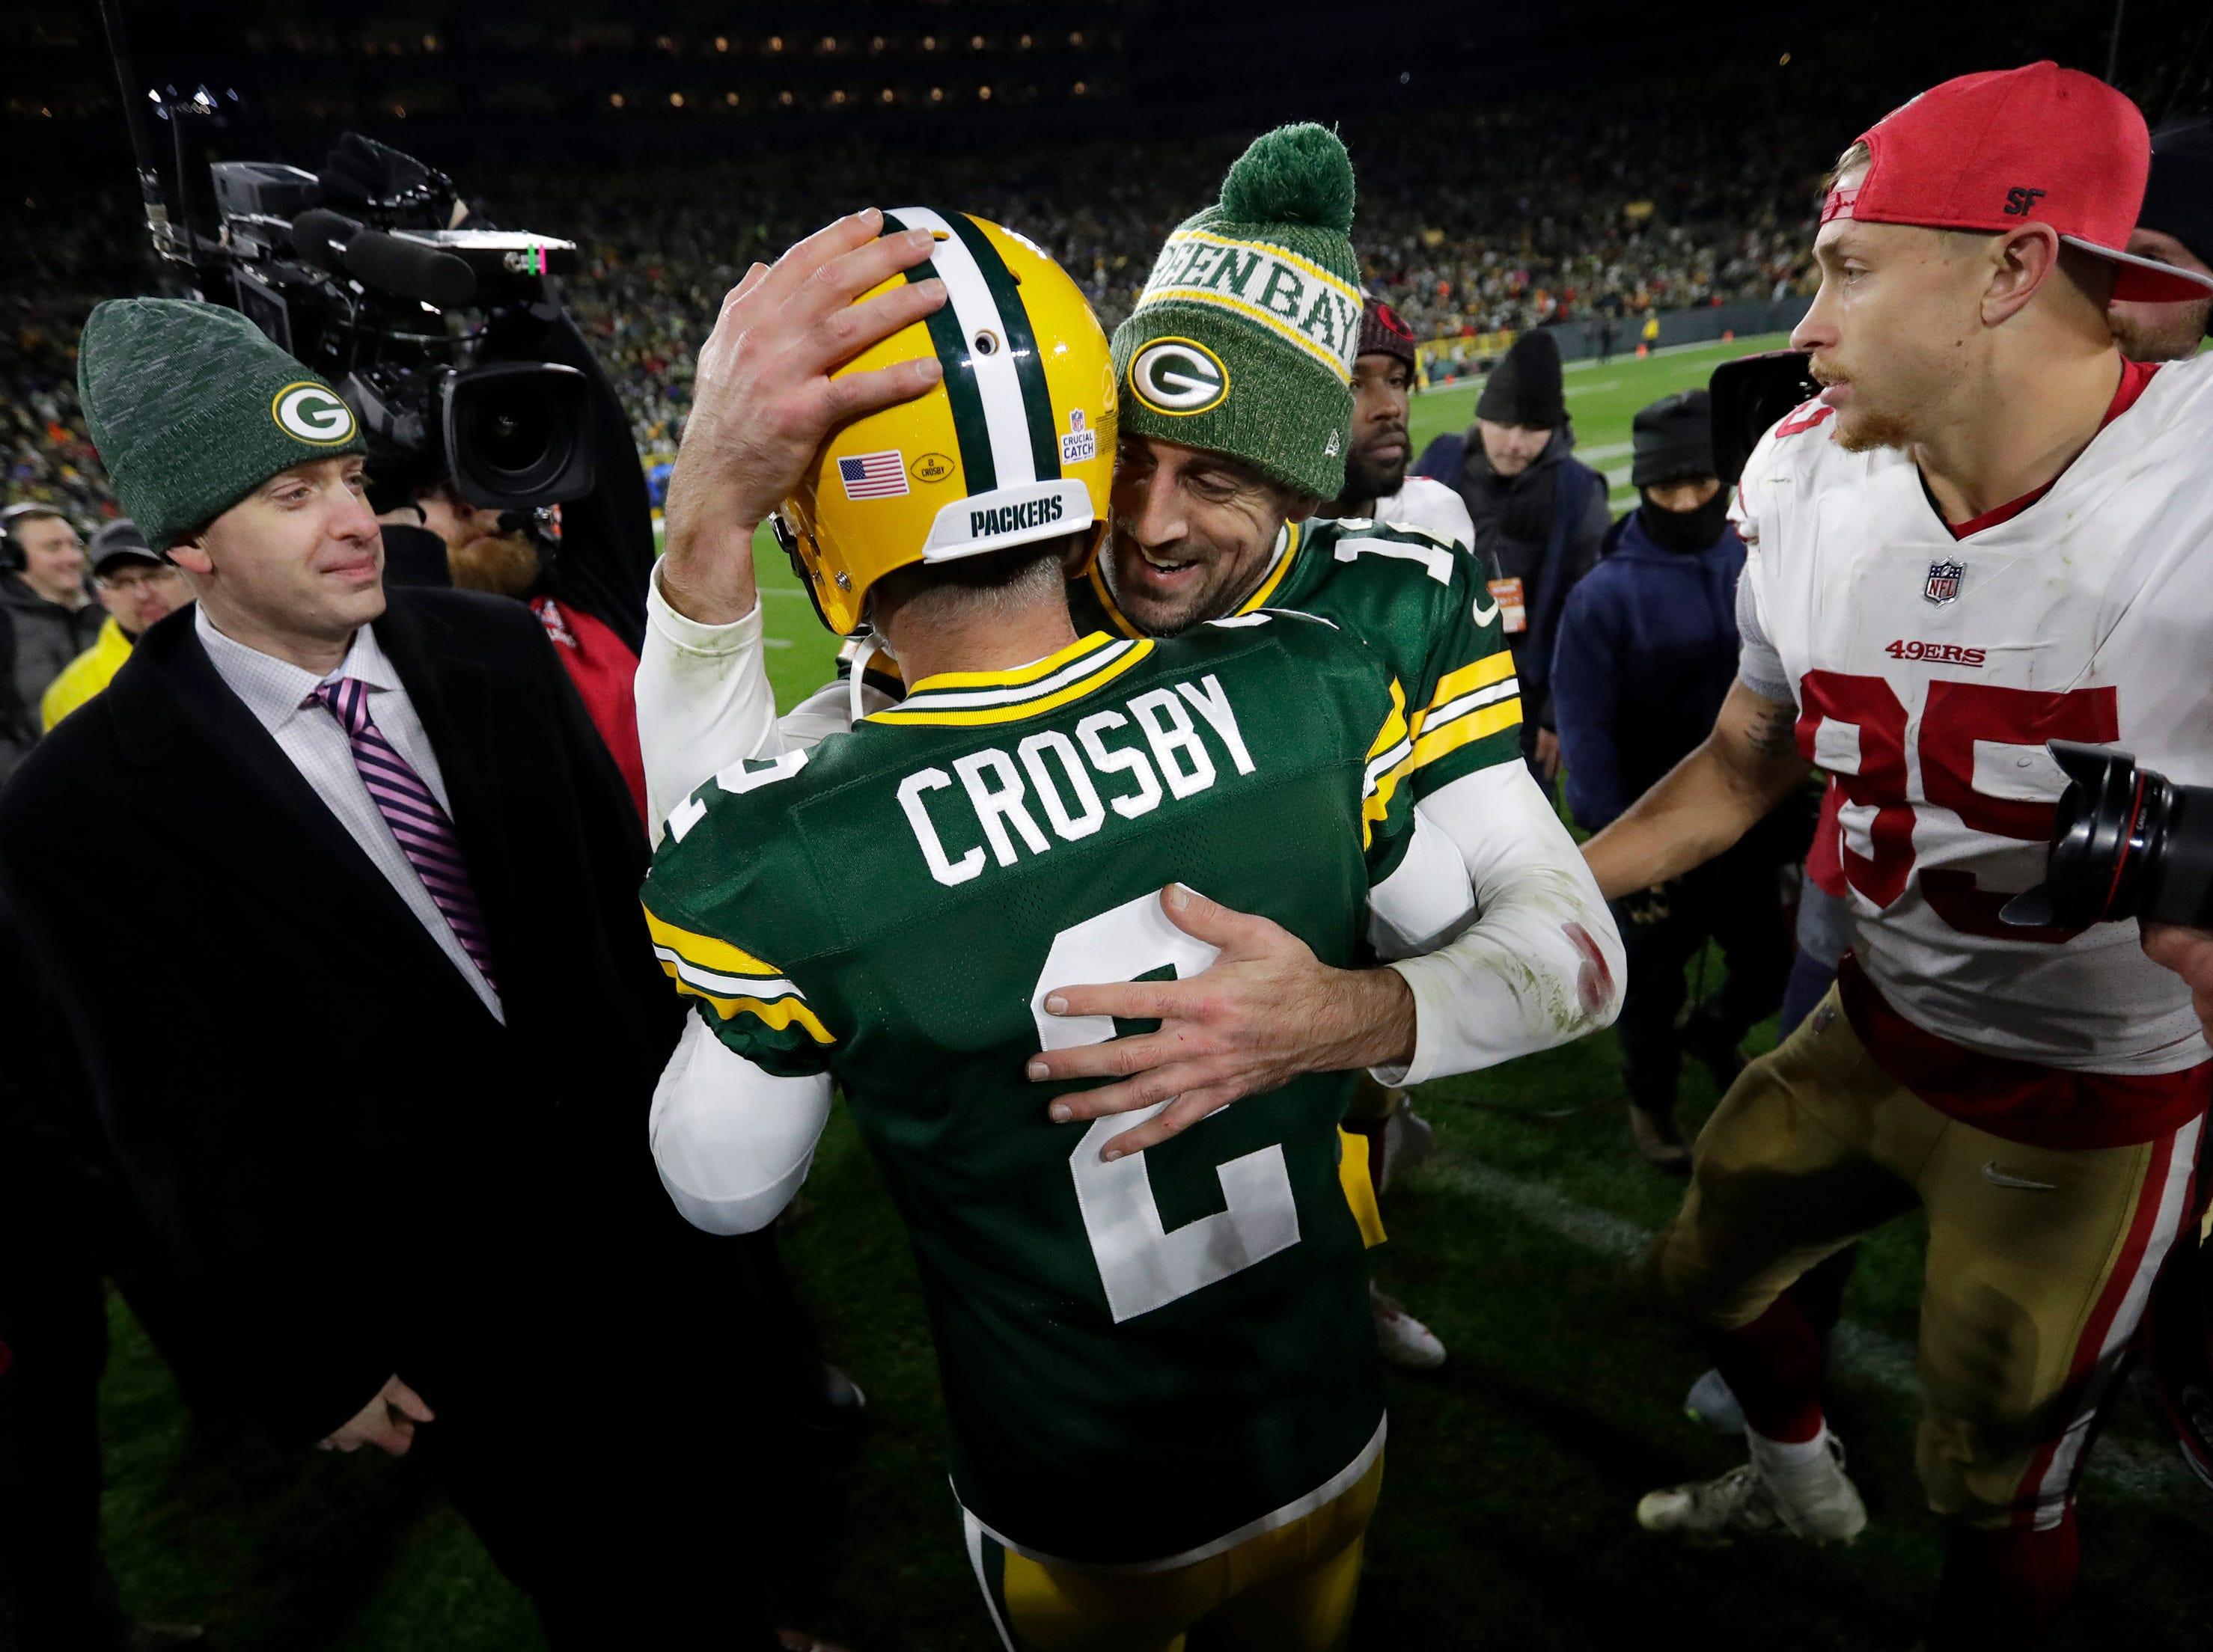 Green Bay Packers quarterback Aaron Rodgers (12) congratulates Mason Crosby (2) on his game-winning field goal against the San Francisco 49ers during their football game Monday, Oct. 15, 2018, at Lambeau Field in Green Bay, Wis. 